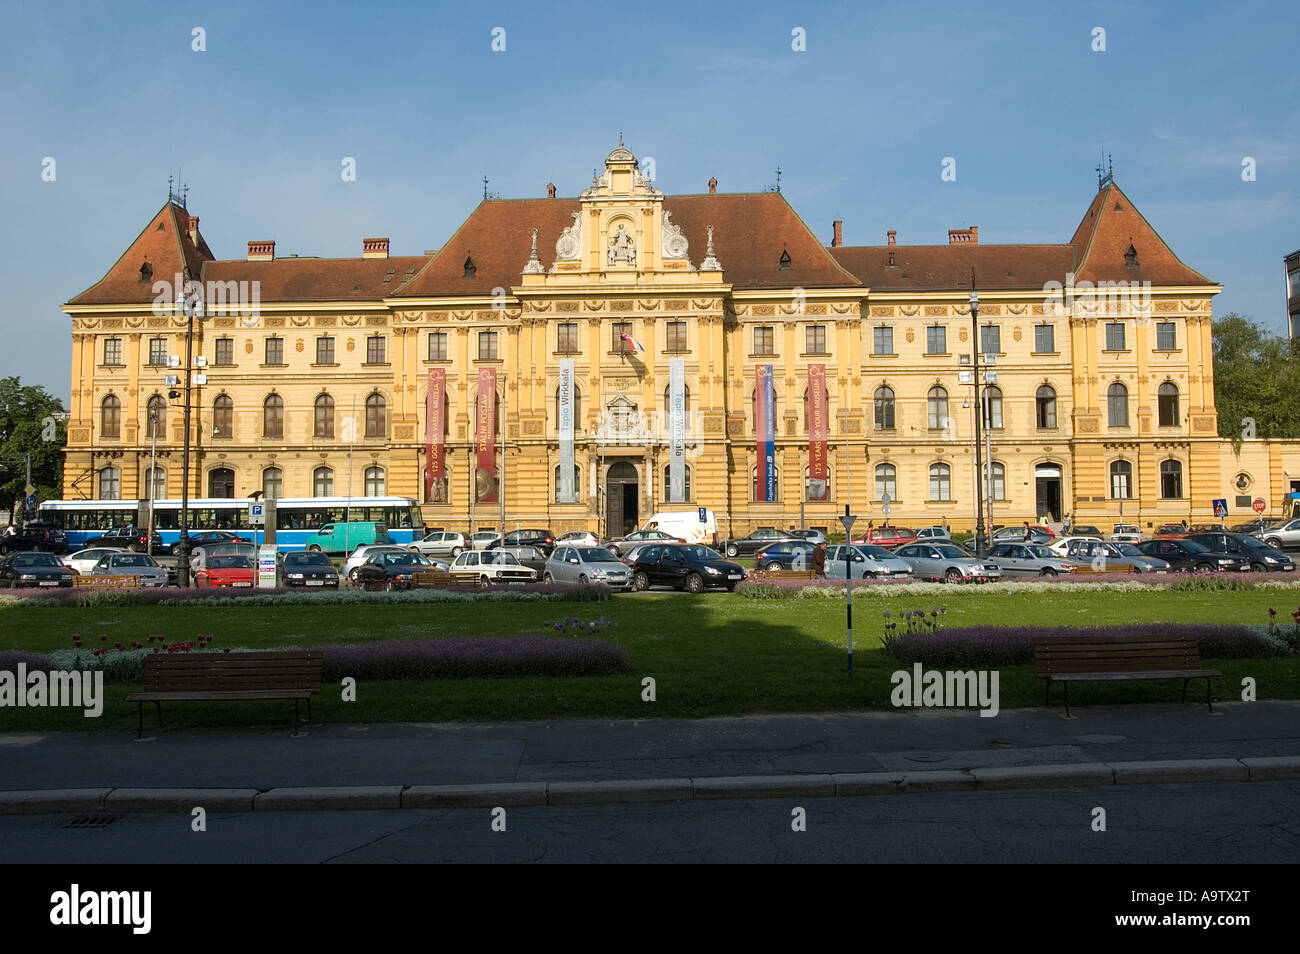 Arts and Crafts museum, Marshal Tito Square Zagreb, Croatia - Stock Image